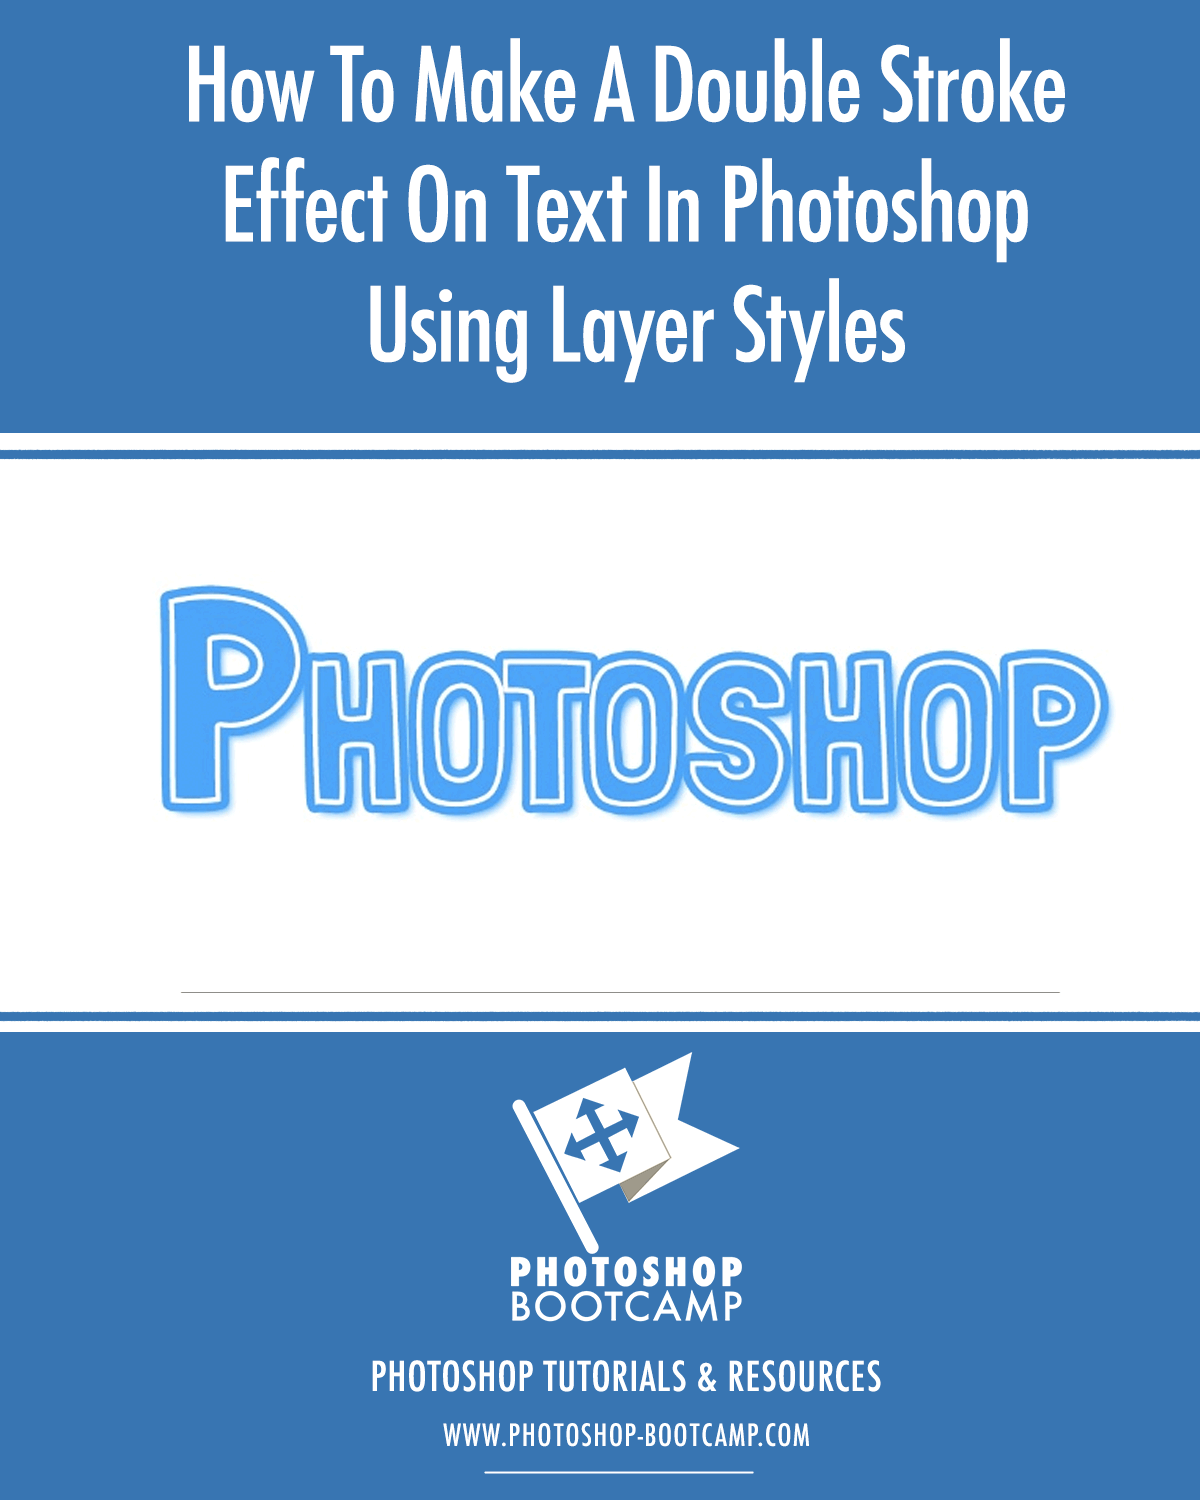 How To Make A Double Stroke Effect On Text In Photoshop Using Layer